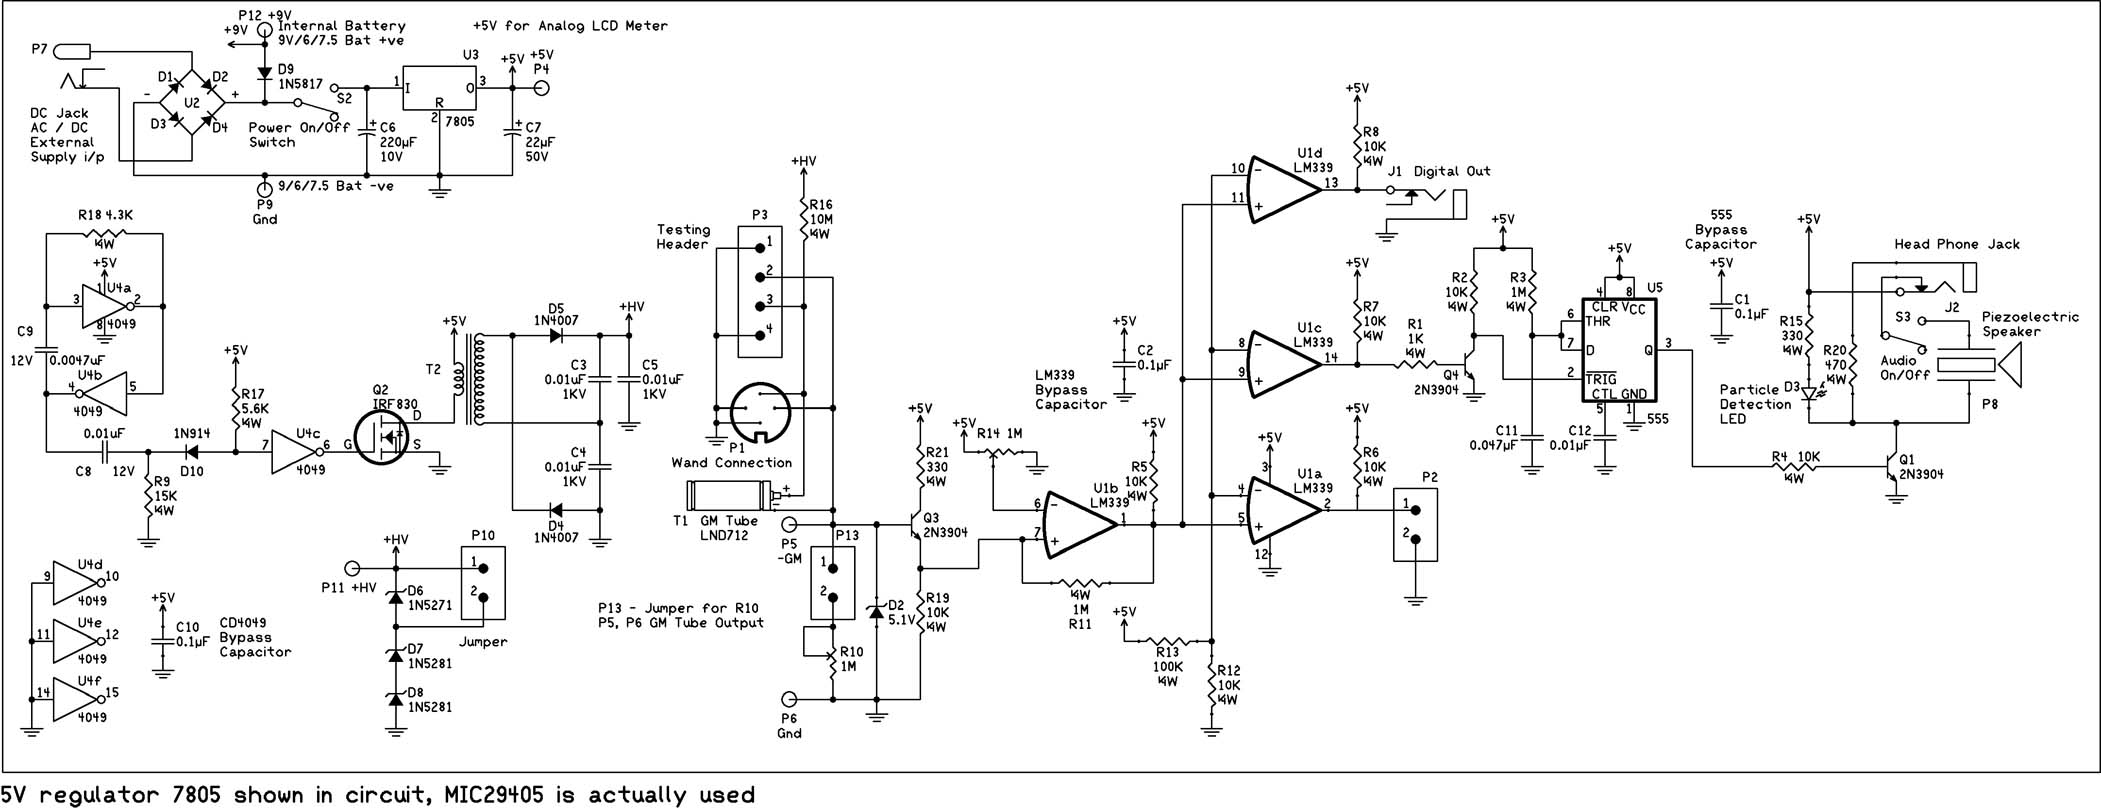 Geiger Counter Schematics